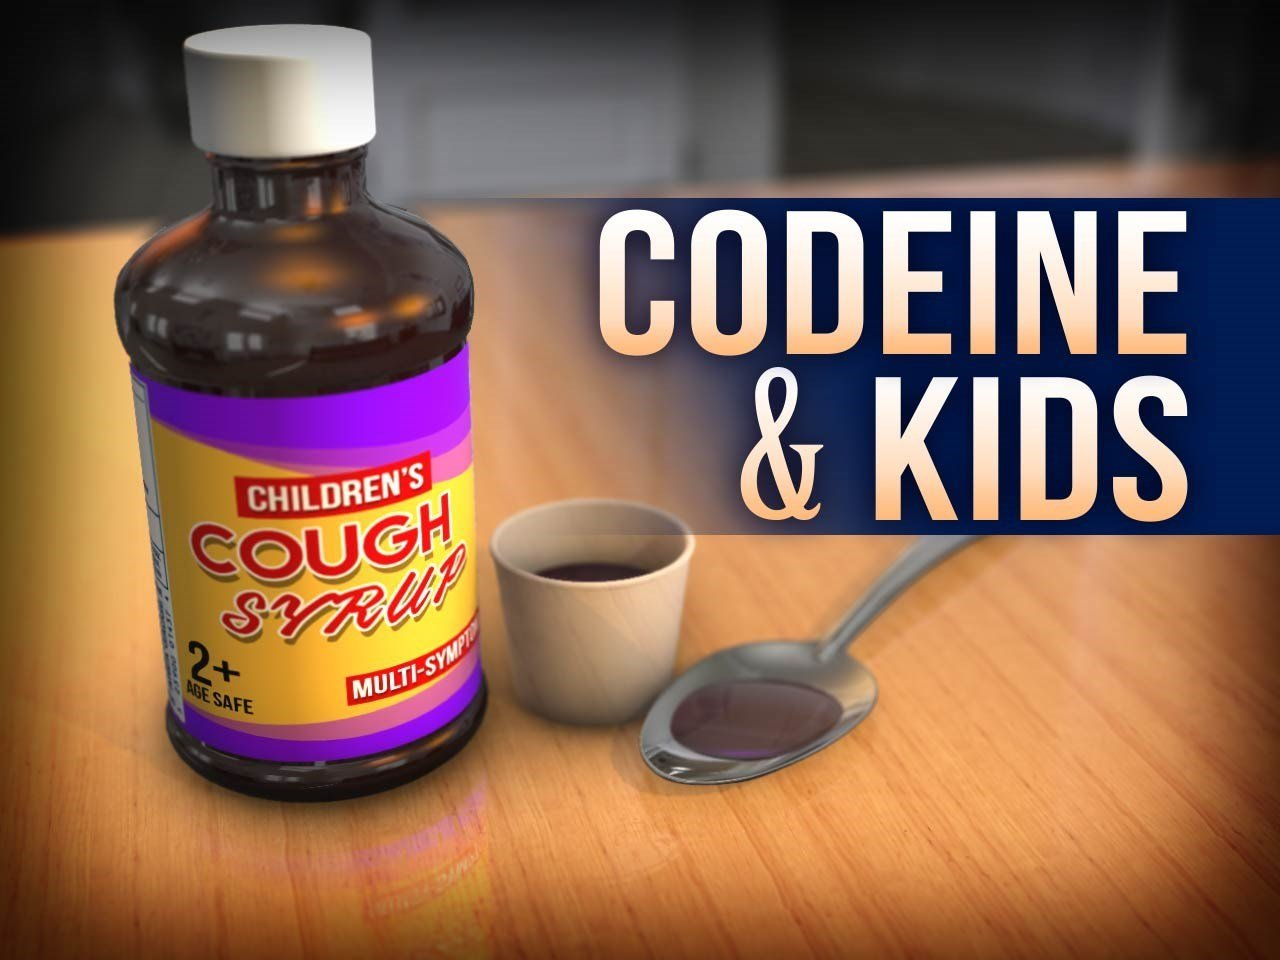 Cough Syrup Containing Opioids Is Dangerous for Kids: FDA